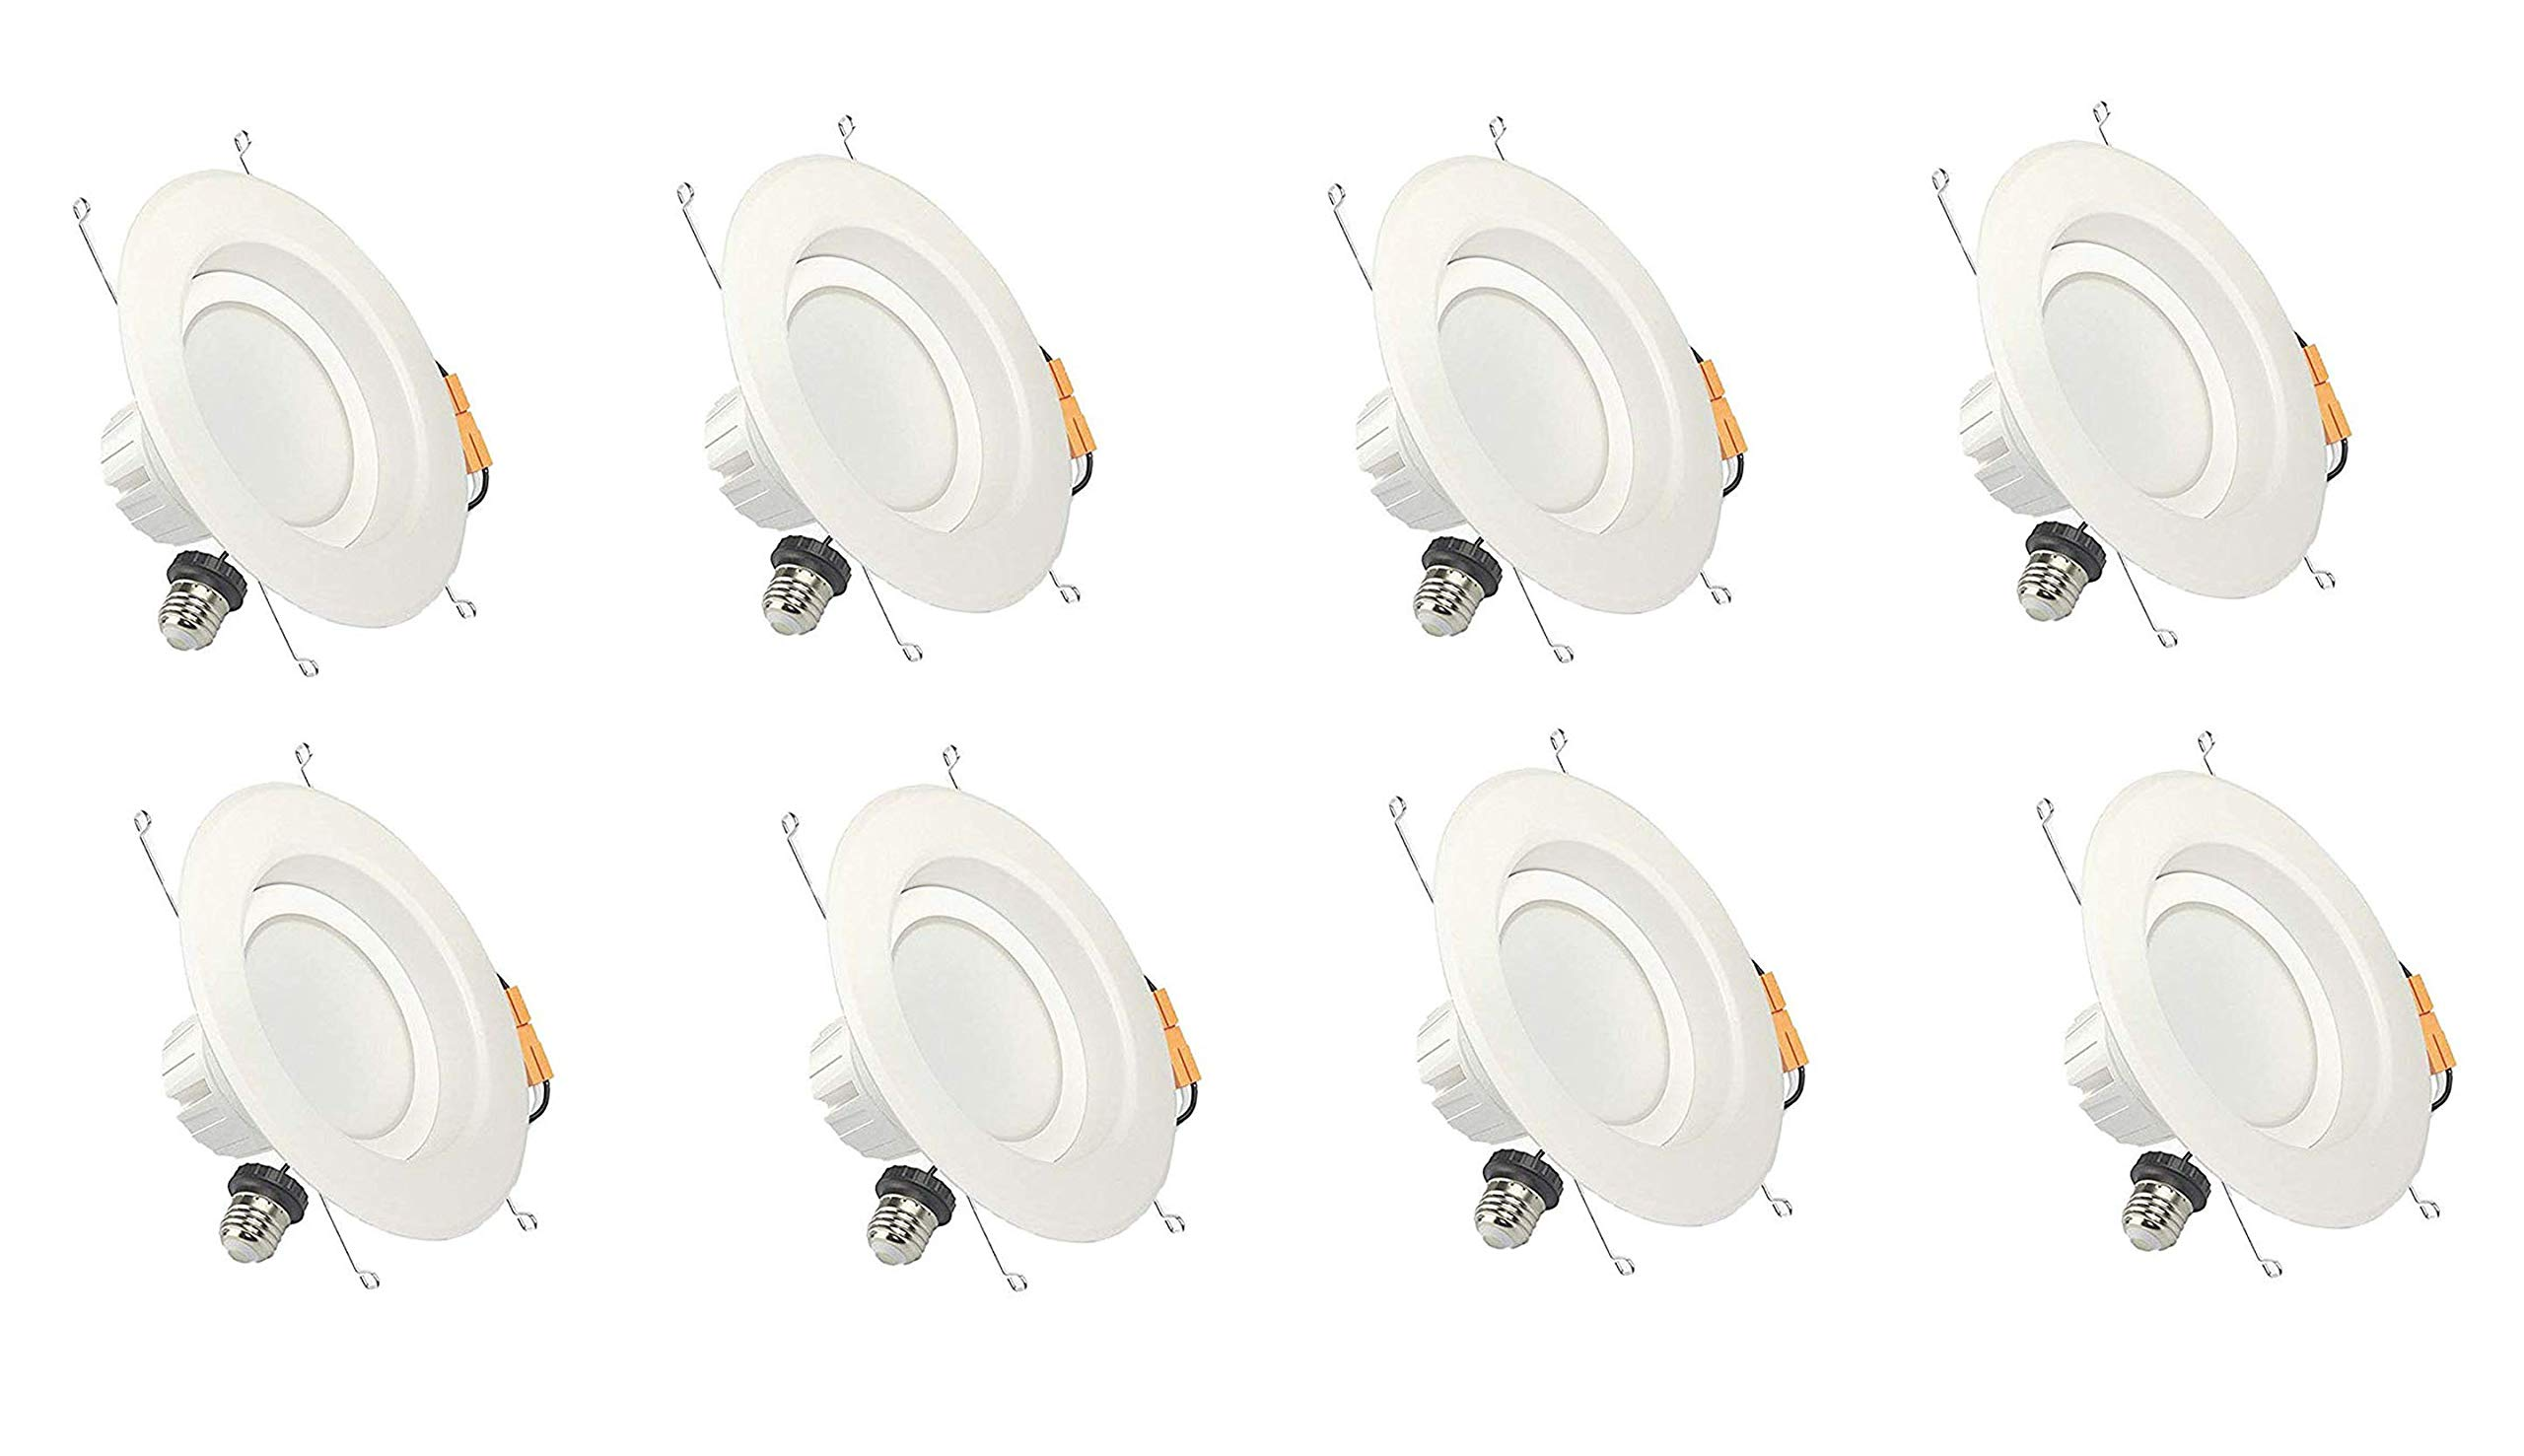 Dynamics 6 Inch LED Recessed Lighting Dimmable Downlight, 13W, 1100 Lumens, Retrofit Lighting Fixture, IP20 (Dry & Damp Location), 5000K, 8 Pack